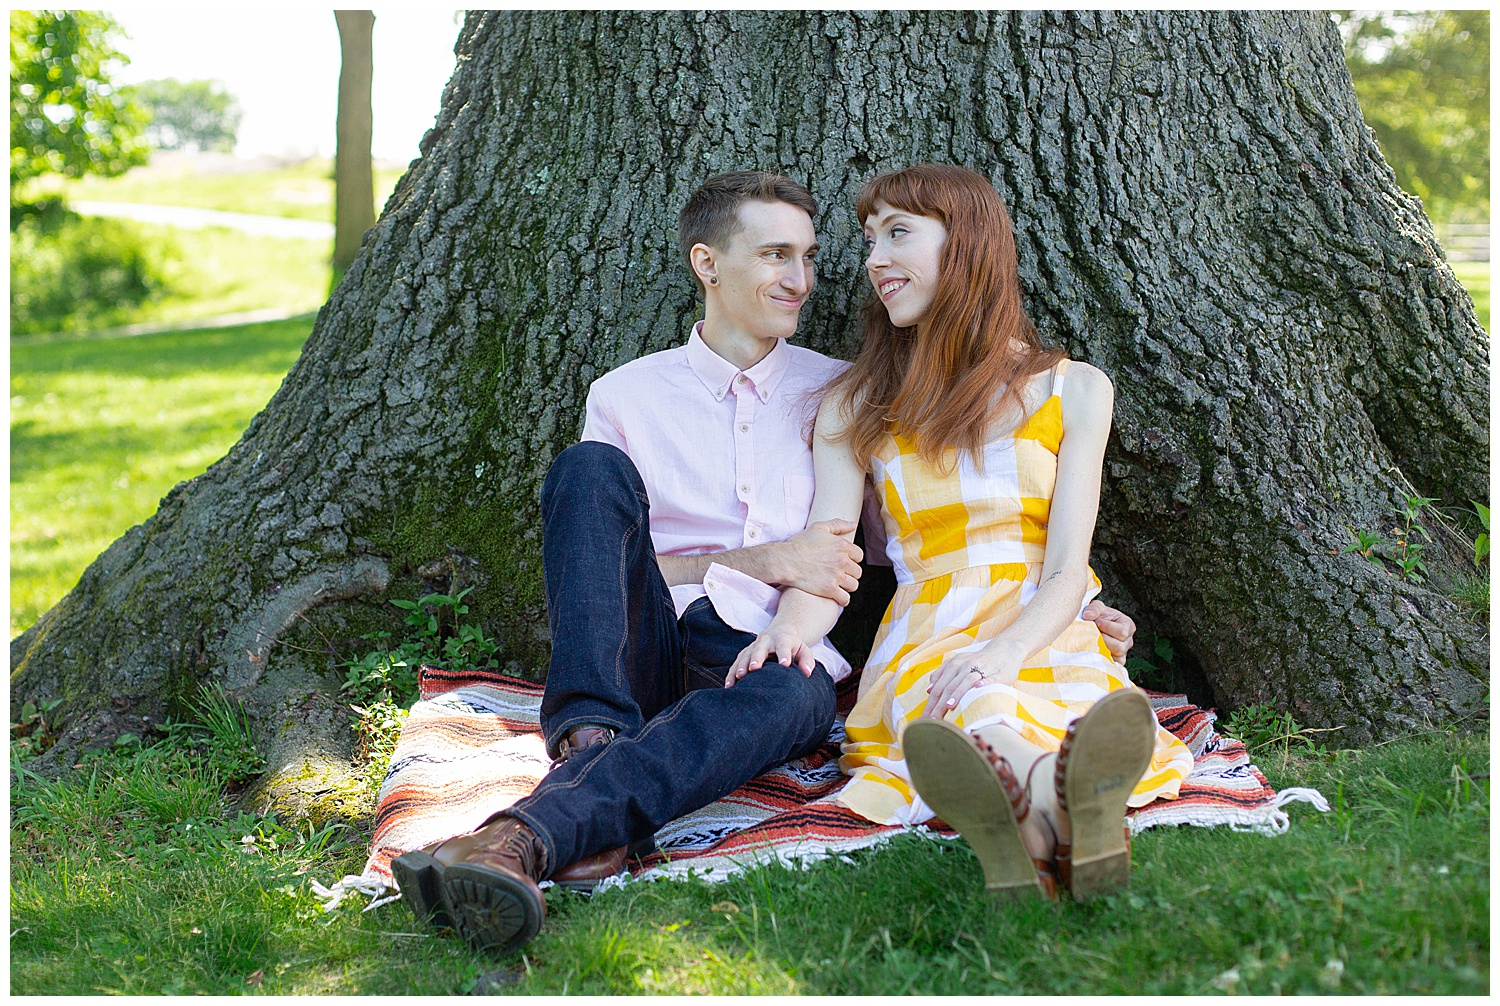 Kate-Alison-Photography-Central-Park-Engagement-Session-Madison-Alex-20.jpg